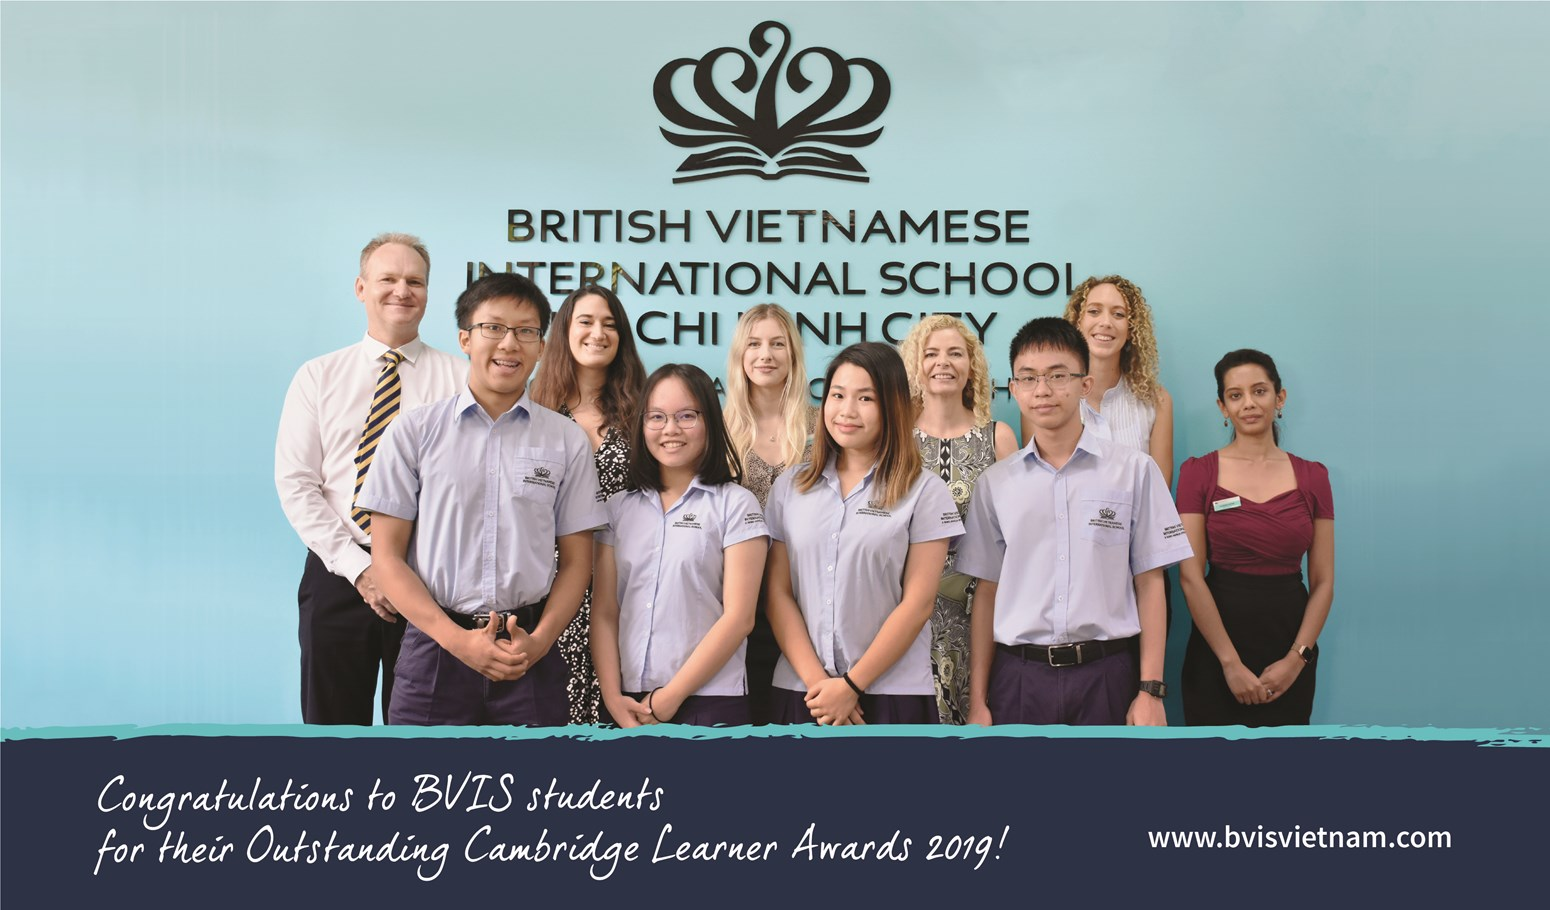 BVIS HCMC Outstanding Cambridge Cambridge Learners Awards 2019